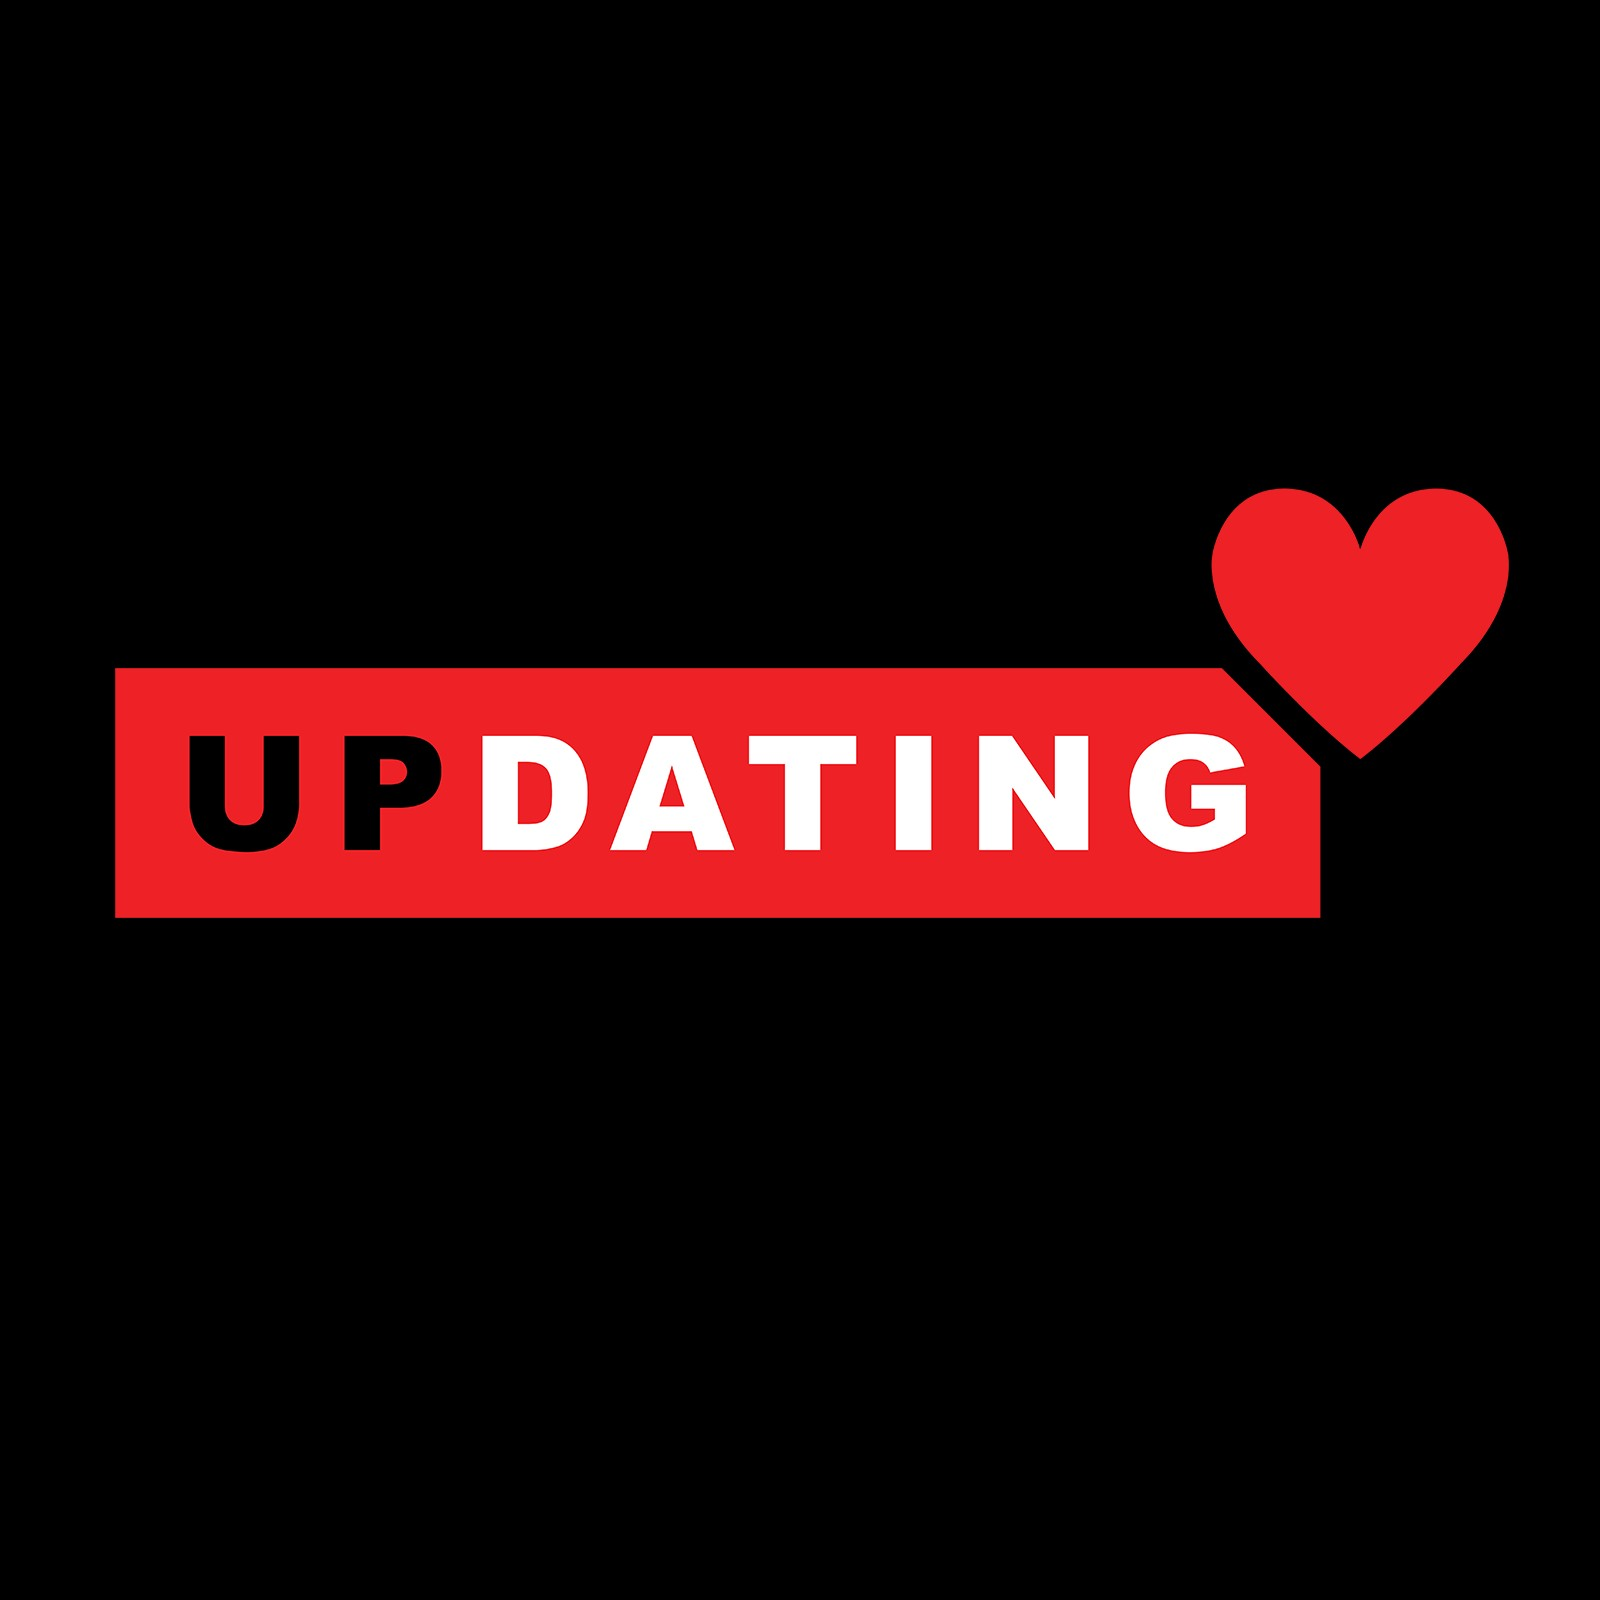 up-dating